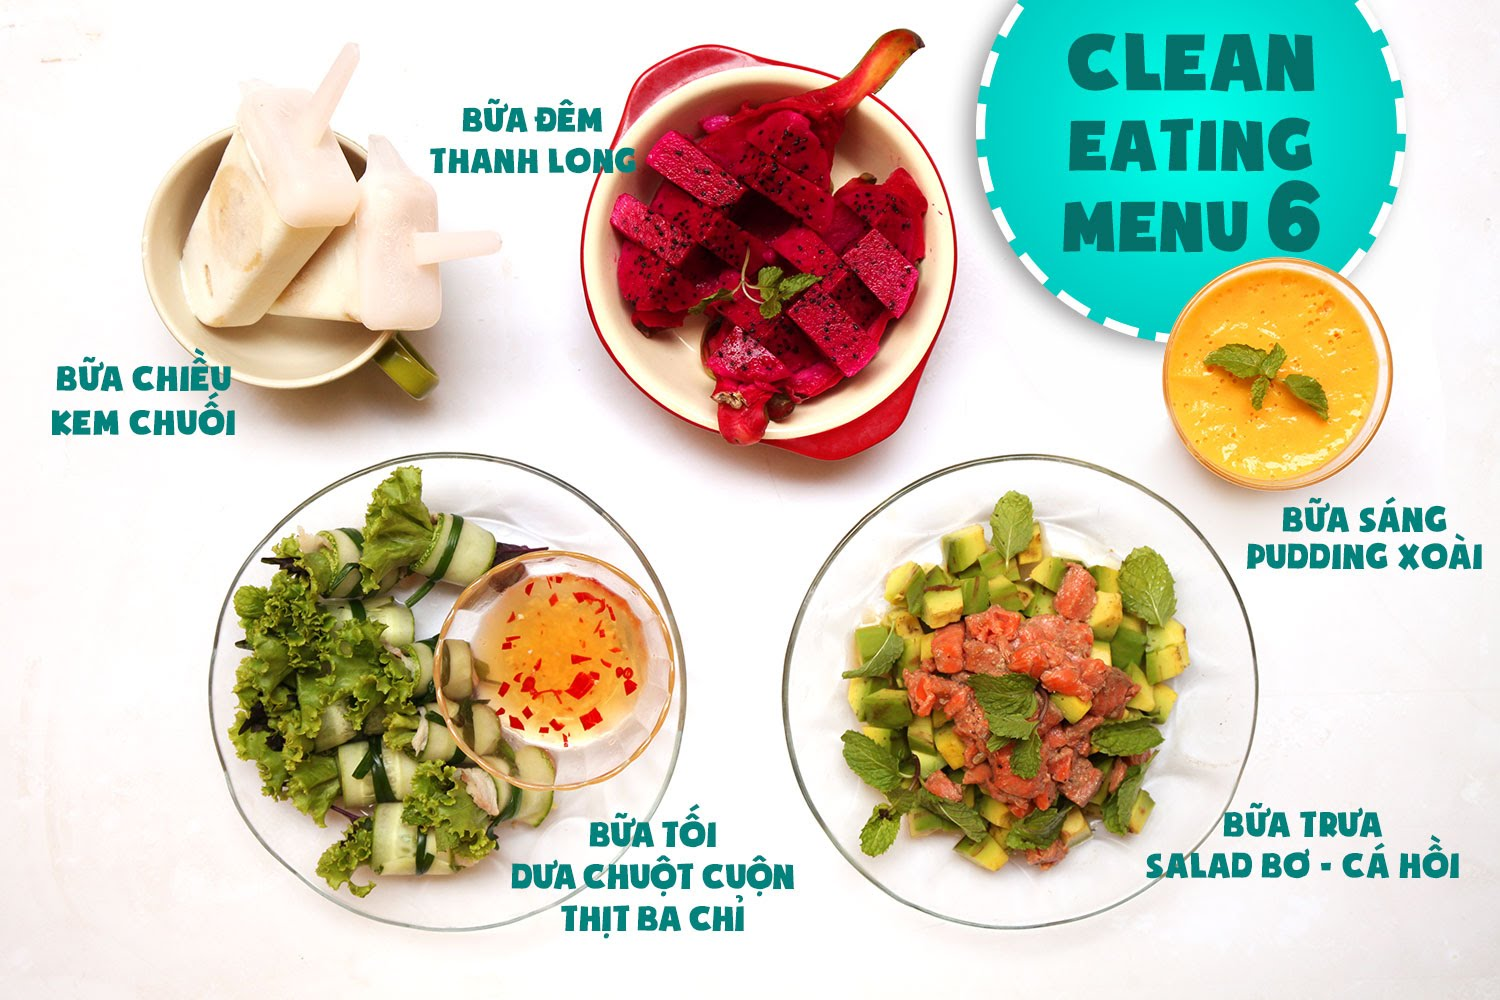 eat-clean-menu-ngay-6